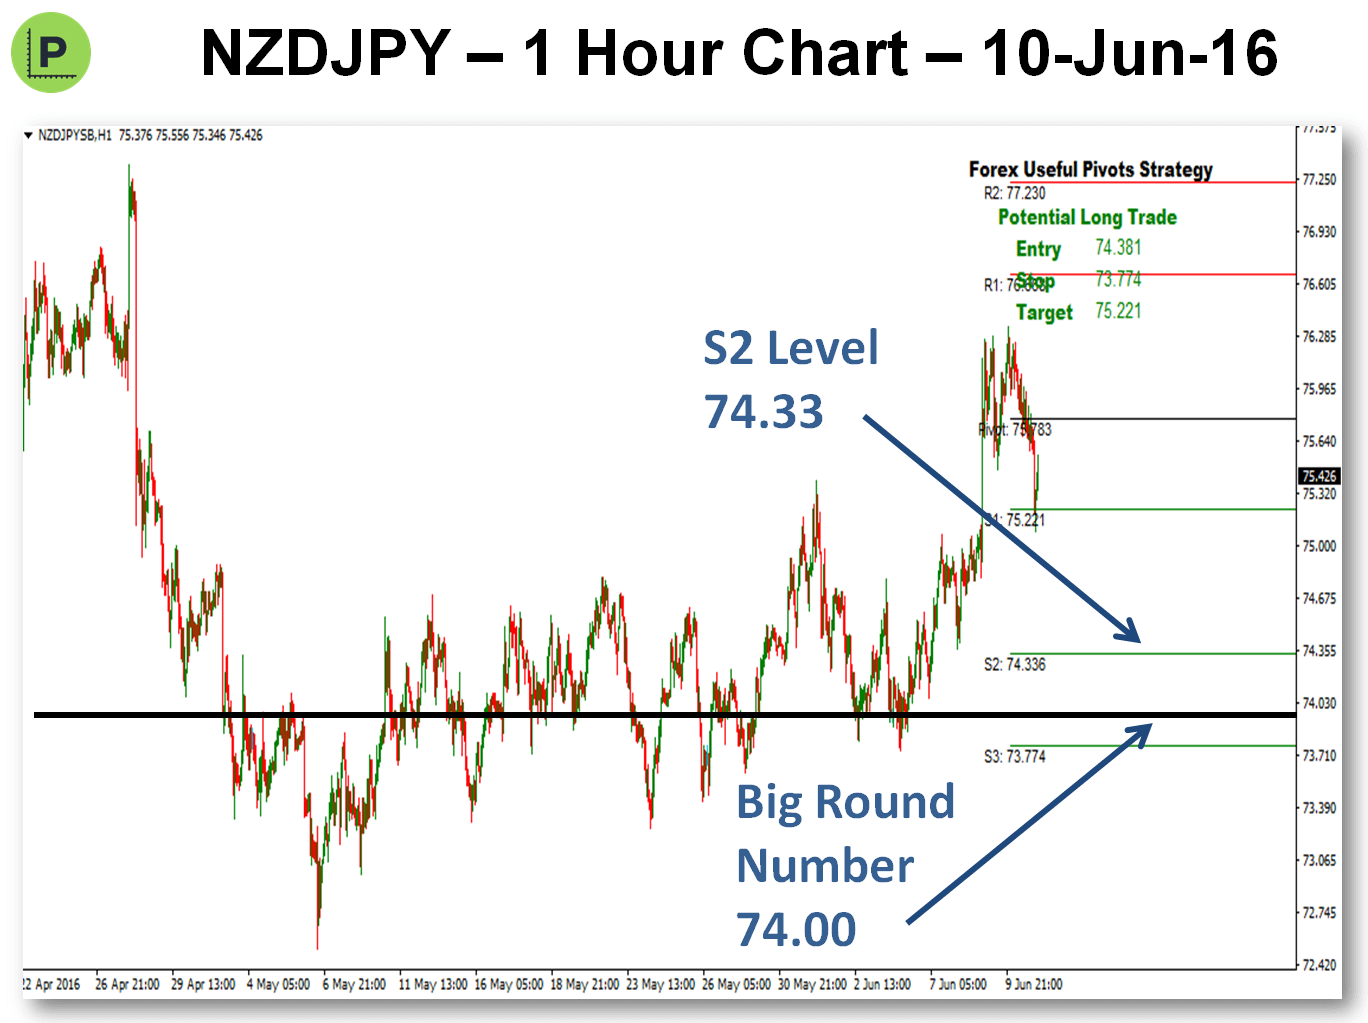 Looking For Pivots Trades - 11-Jun-16 NZDJPY